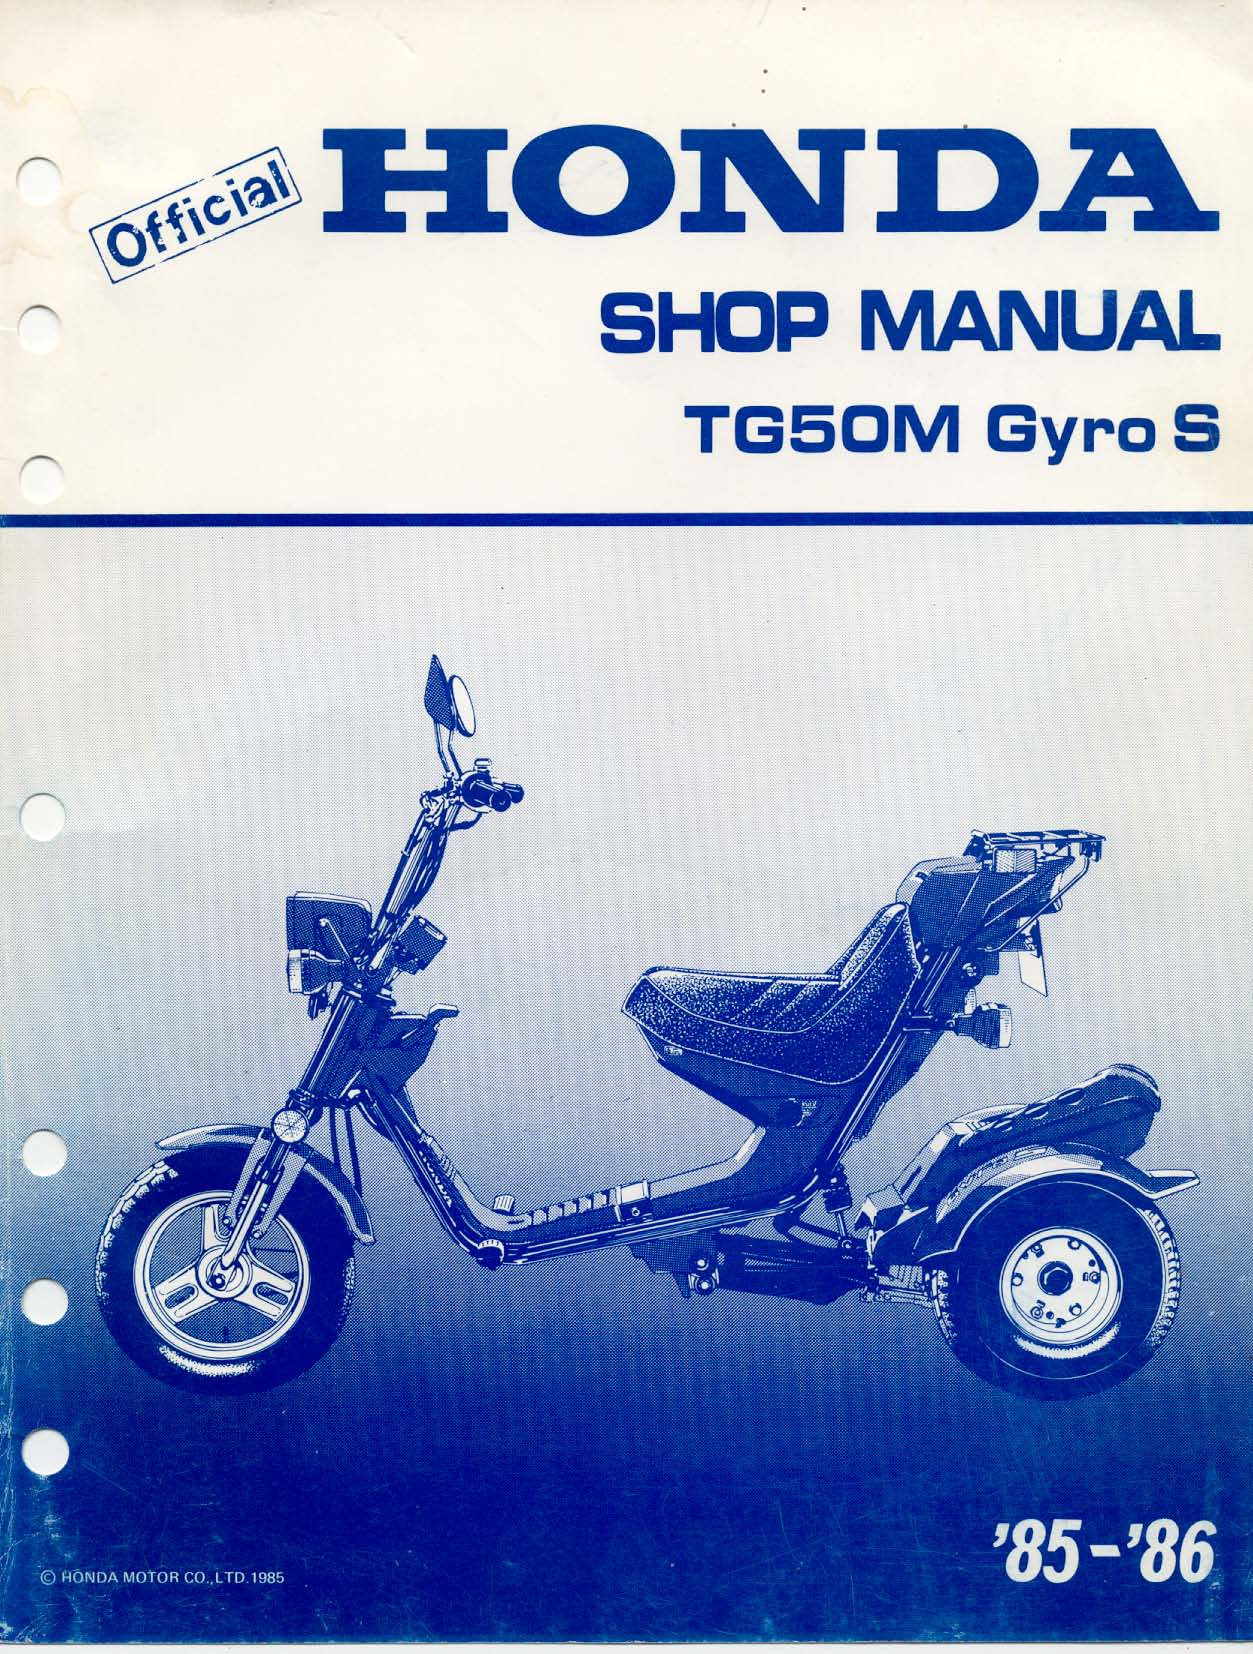 1967 Honda Ct90 Wiring Diagram Workshop Manual For Tg50m Gyro S All The Data